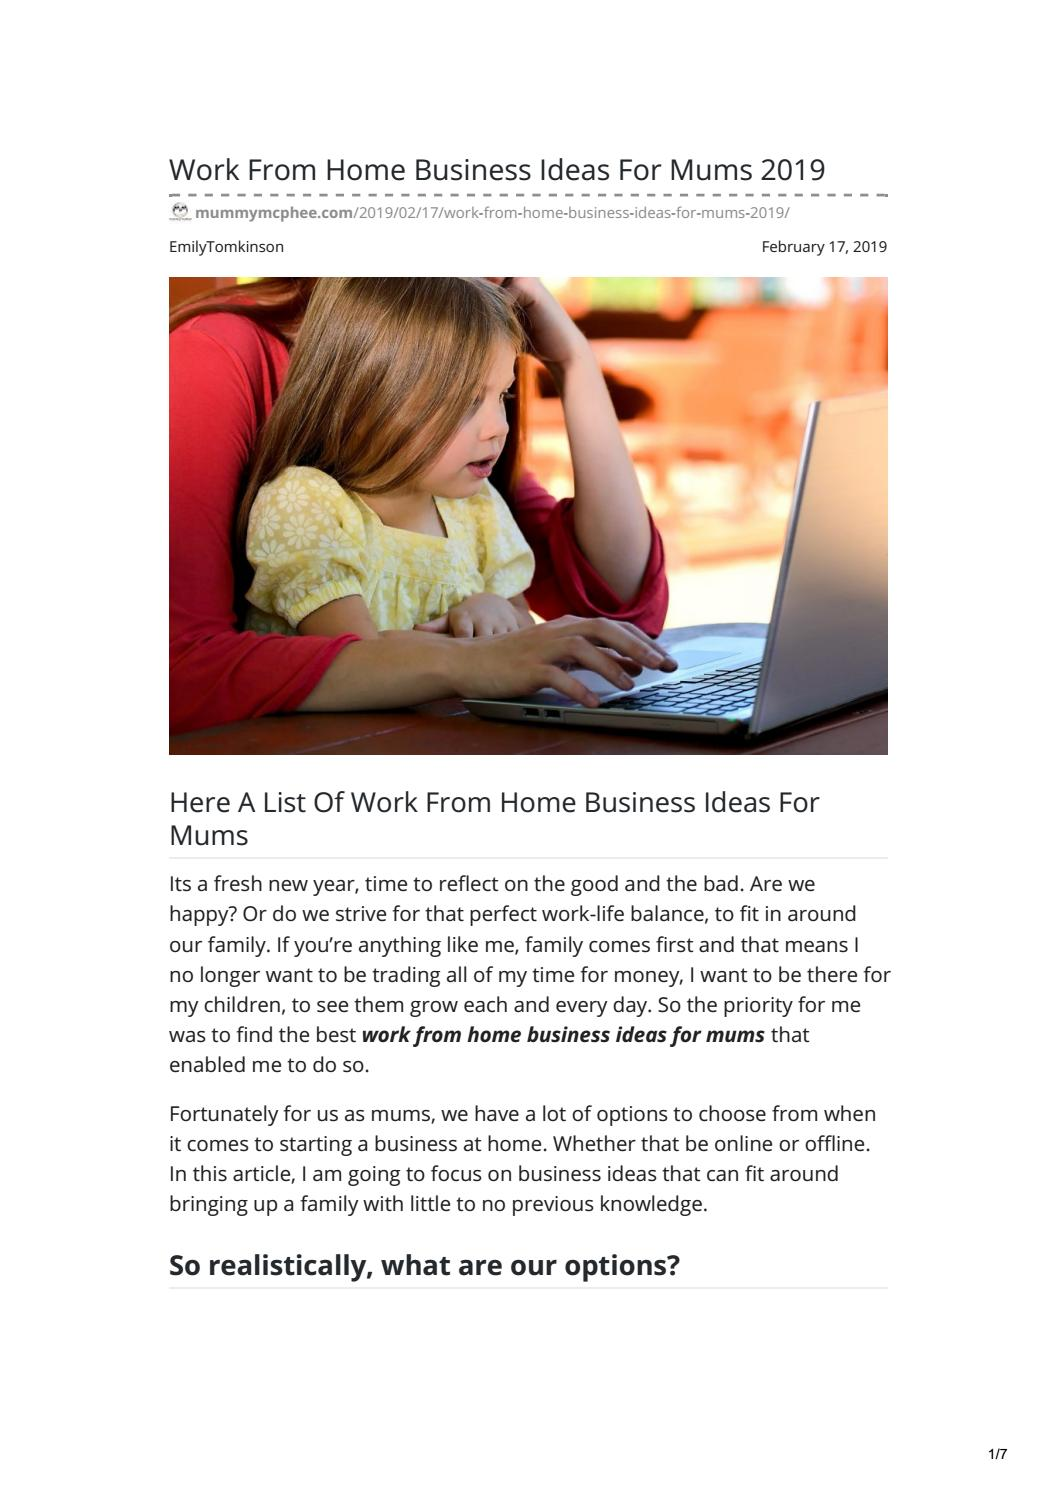 Work From Home Business Ideas For Mums 2019 By Mummymcphee